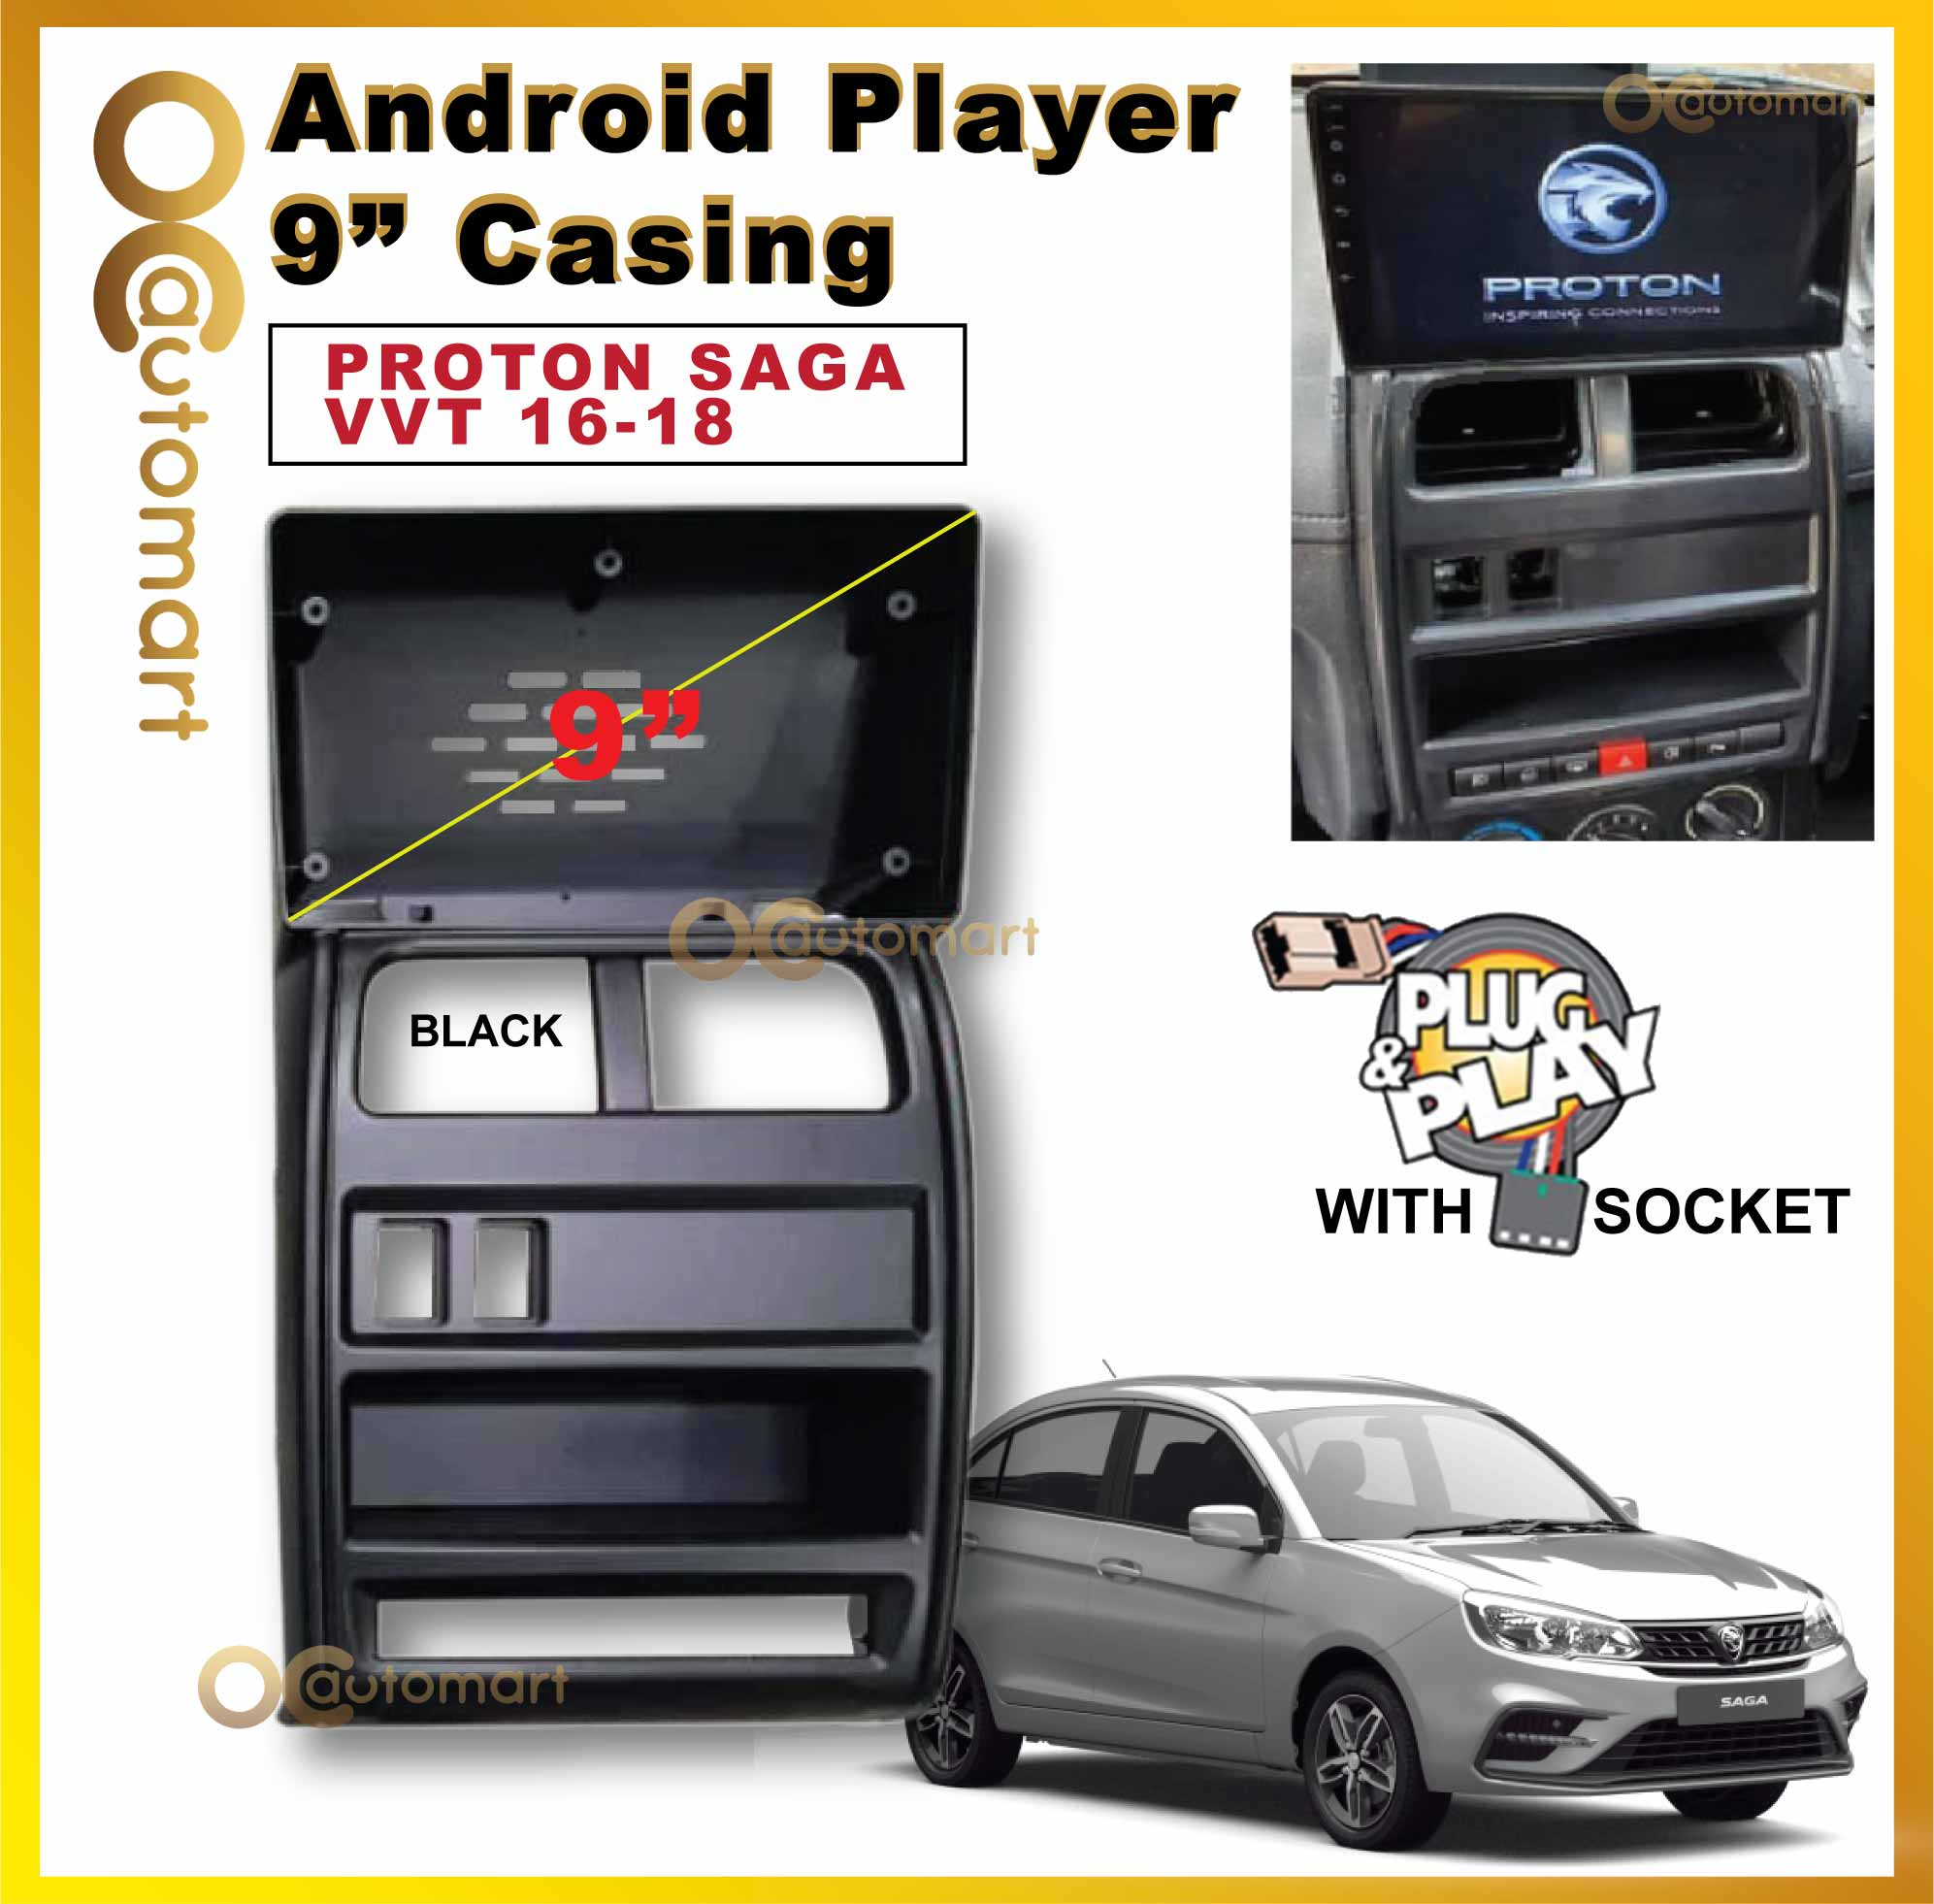 """Proton Saga VVT 2016-2018 Big Screen 9"""" Plug and Play OEM Android Player Casing Only"""